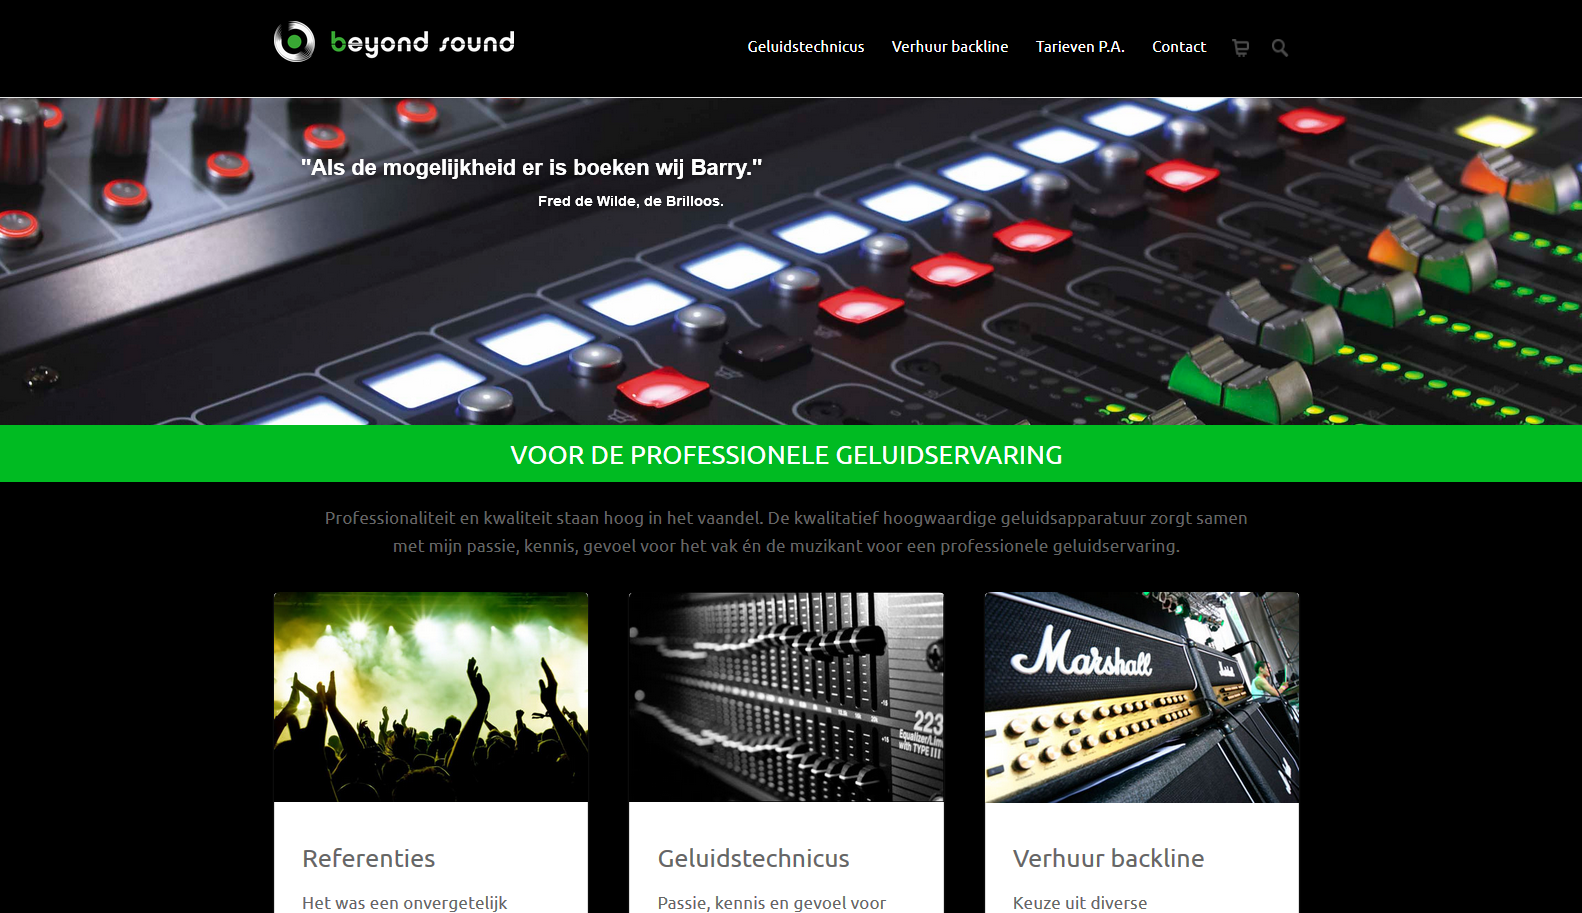 WordPress - Beyond Sound - Geluidtechnicus - Barry van Jole